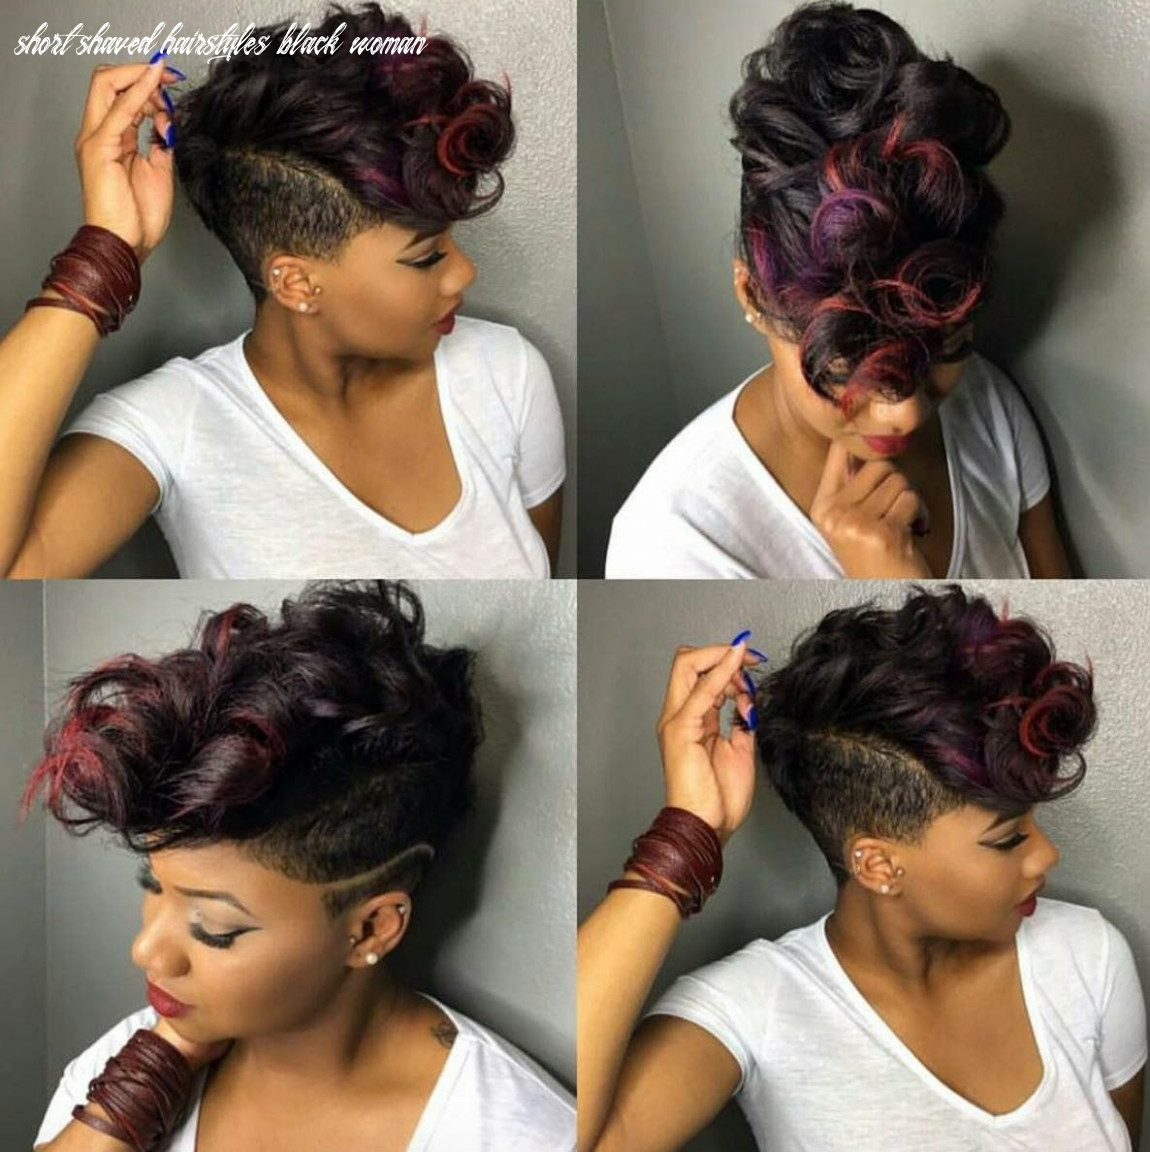 Pin on hair styles short shaved hairstyles black woman